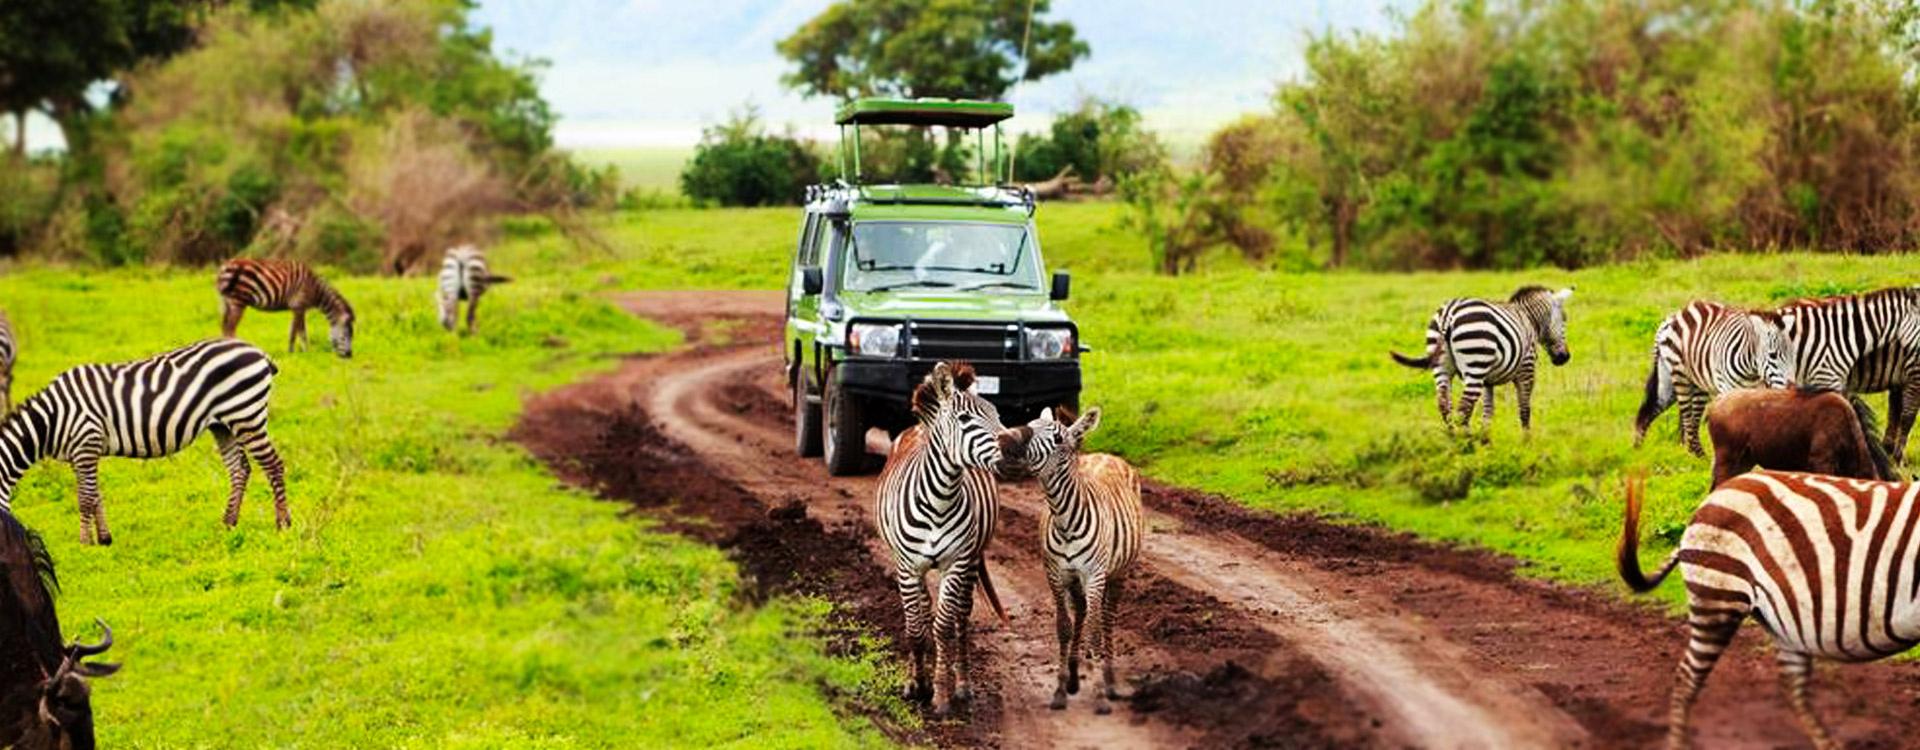 Encircle East Africa-Adventure-explore and discover